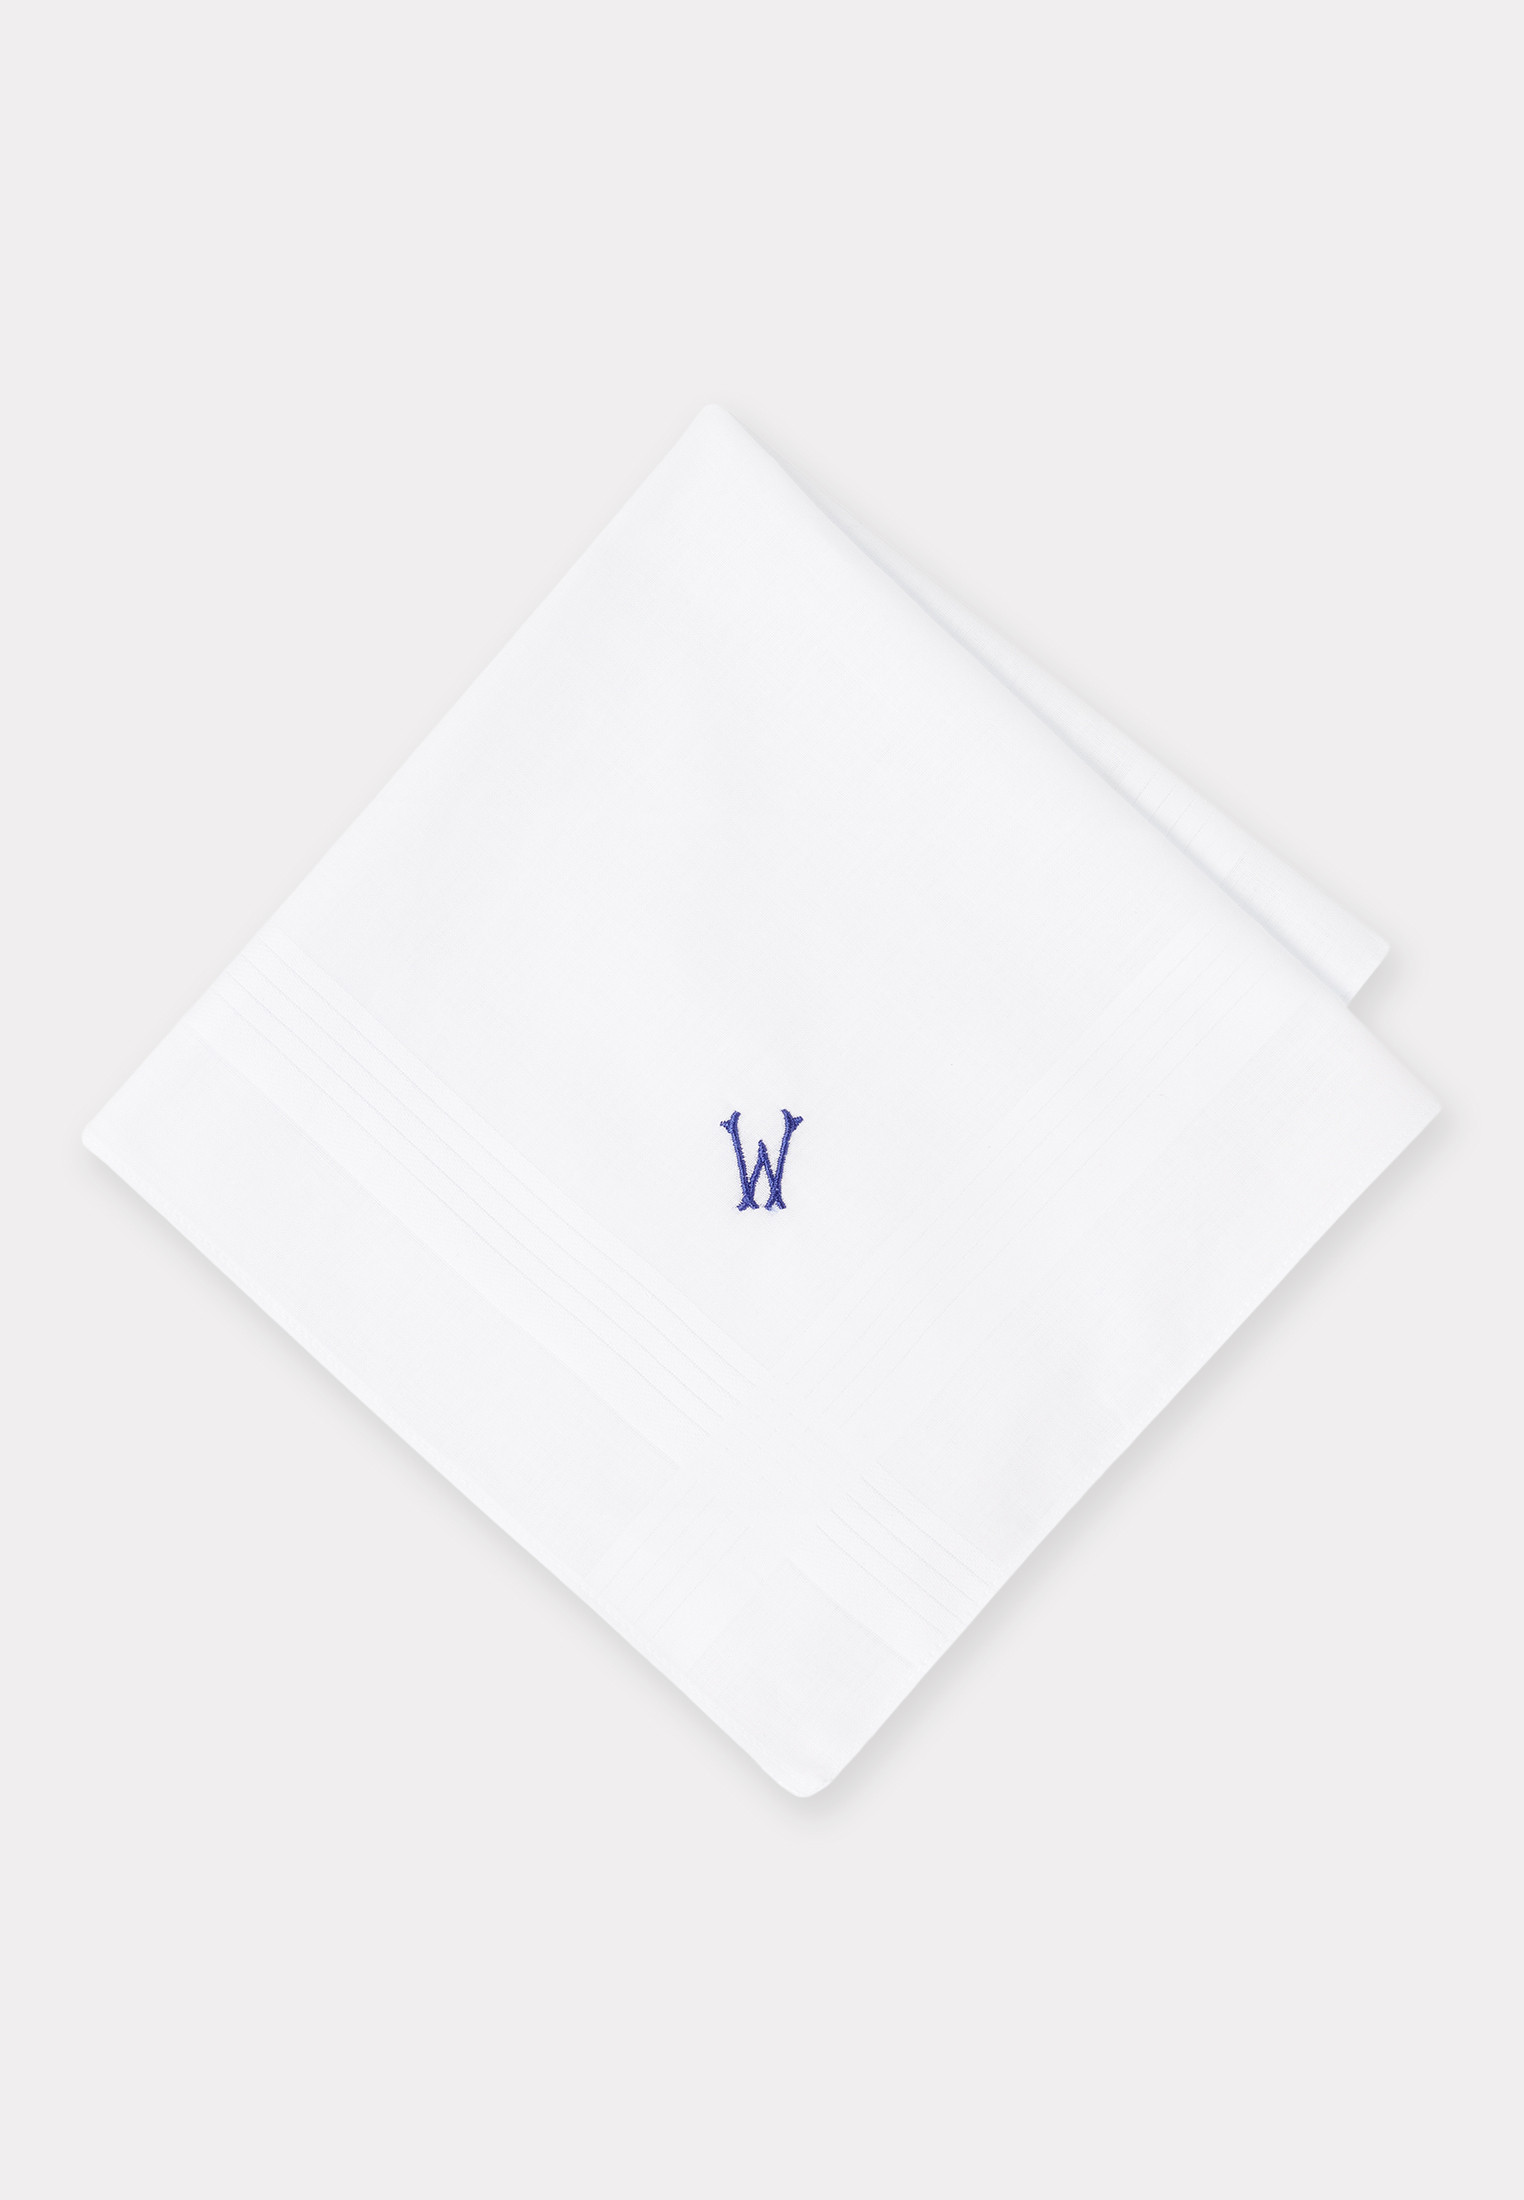 Handkerchief Monogrammed with Initial 'W' - Presentation Pack of 3